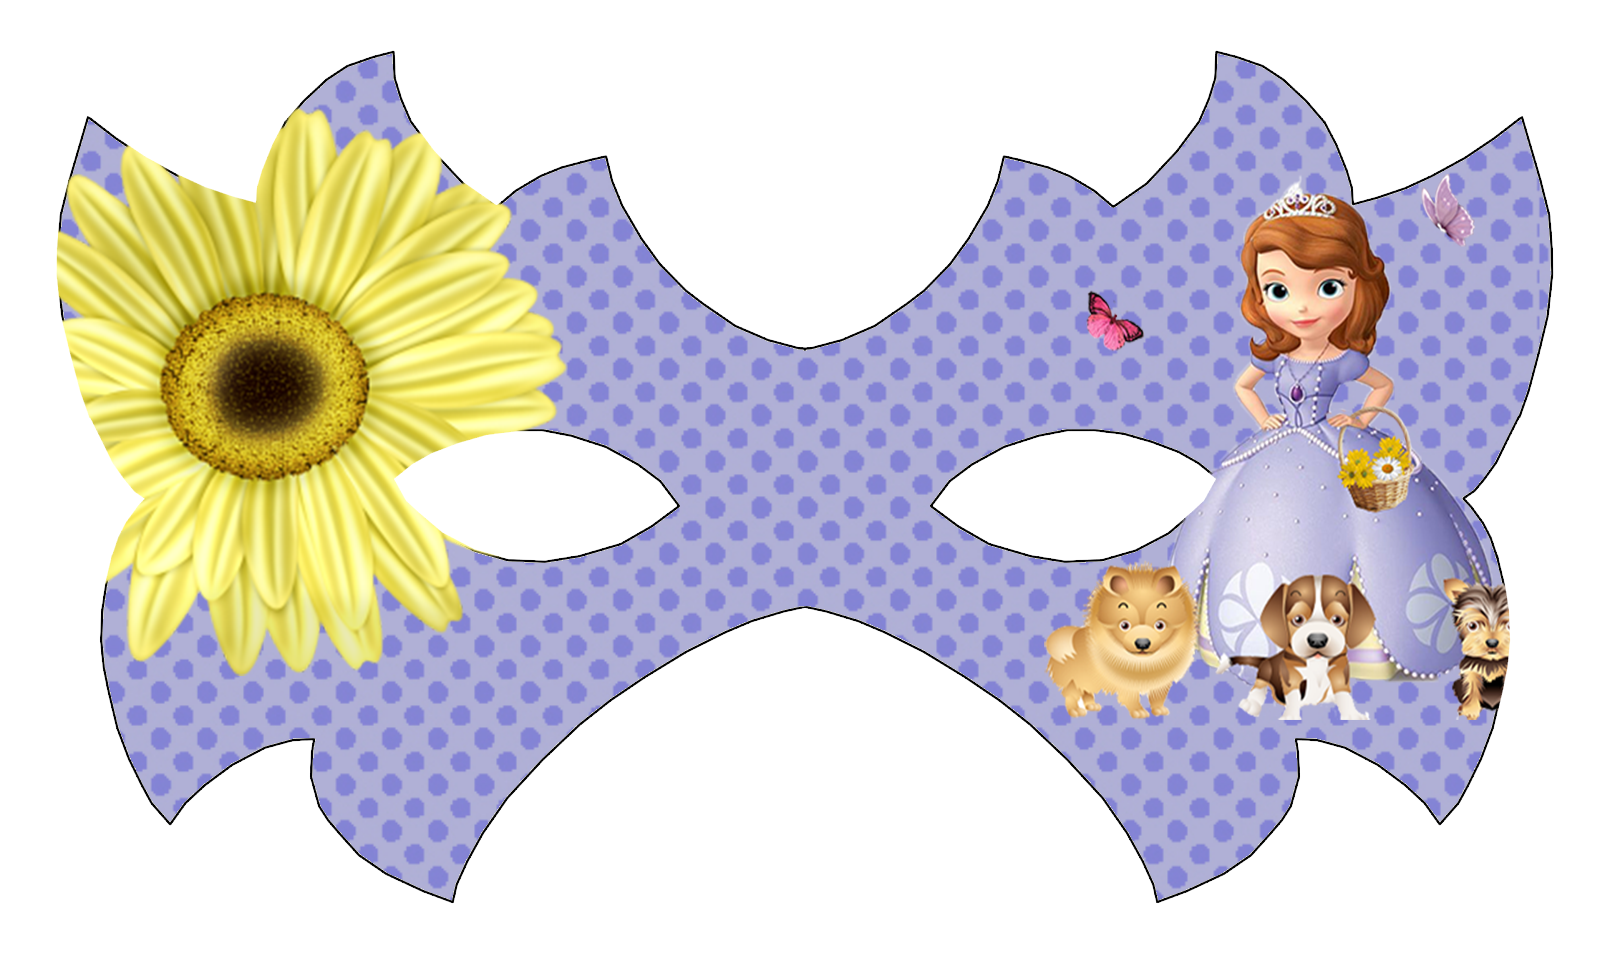 Sofia the First Free Printable Mask.